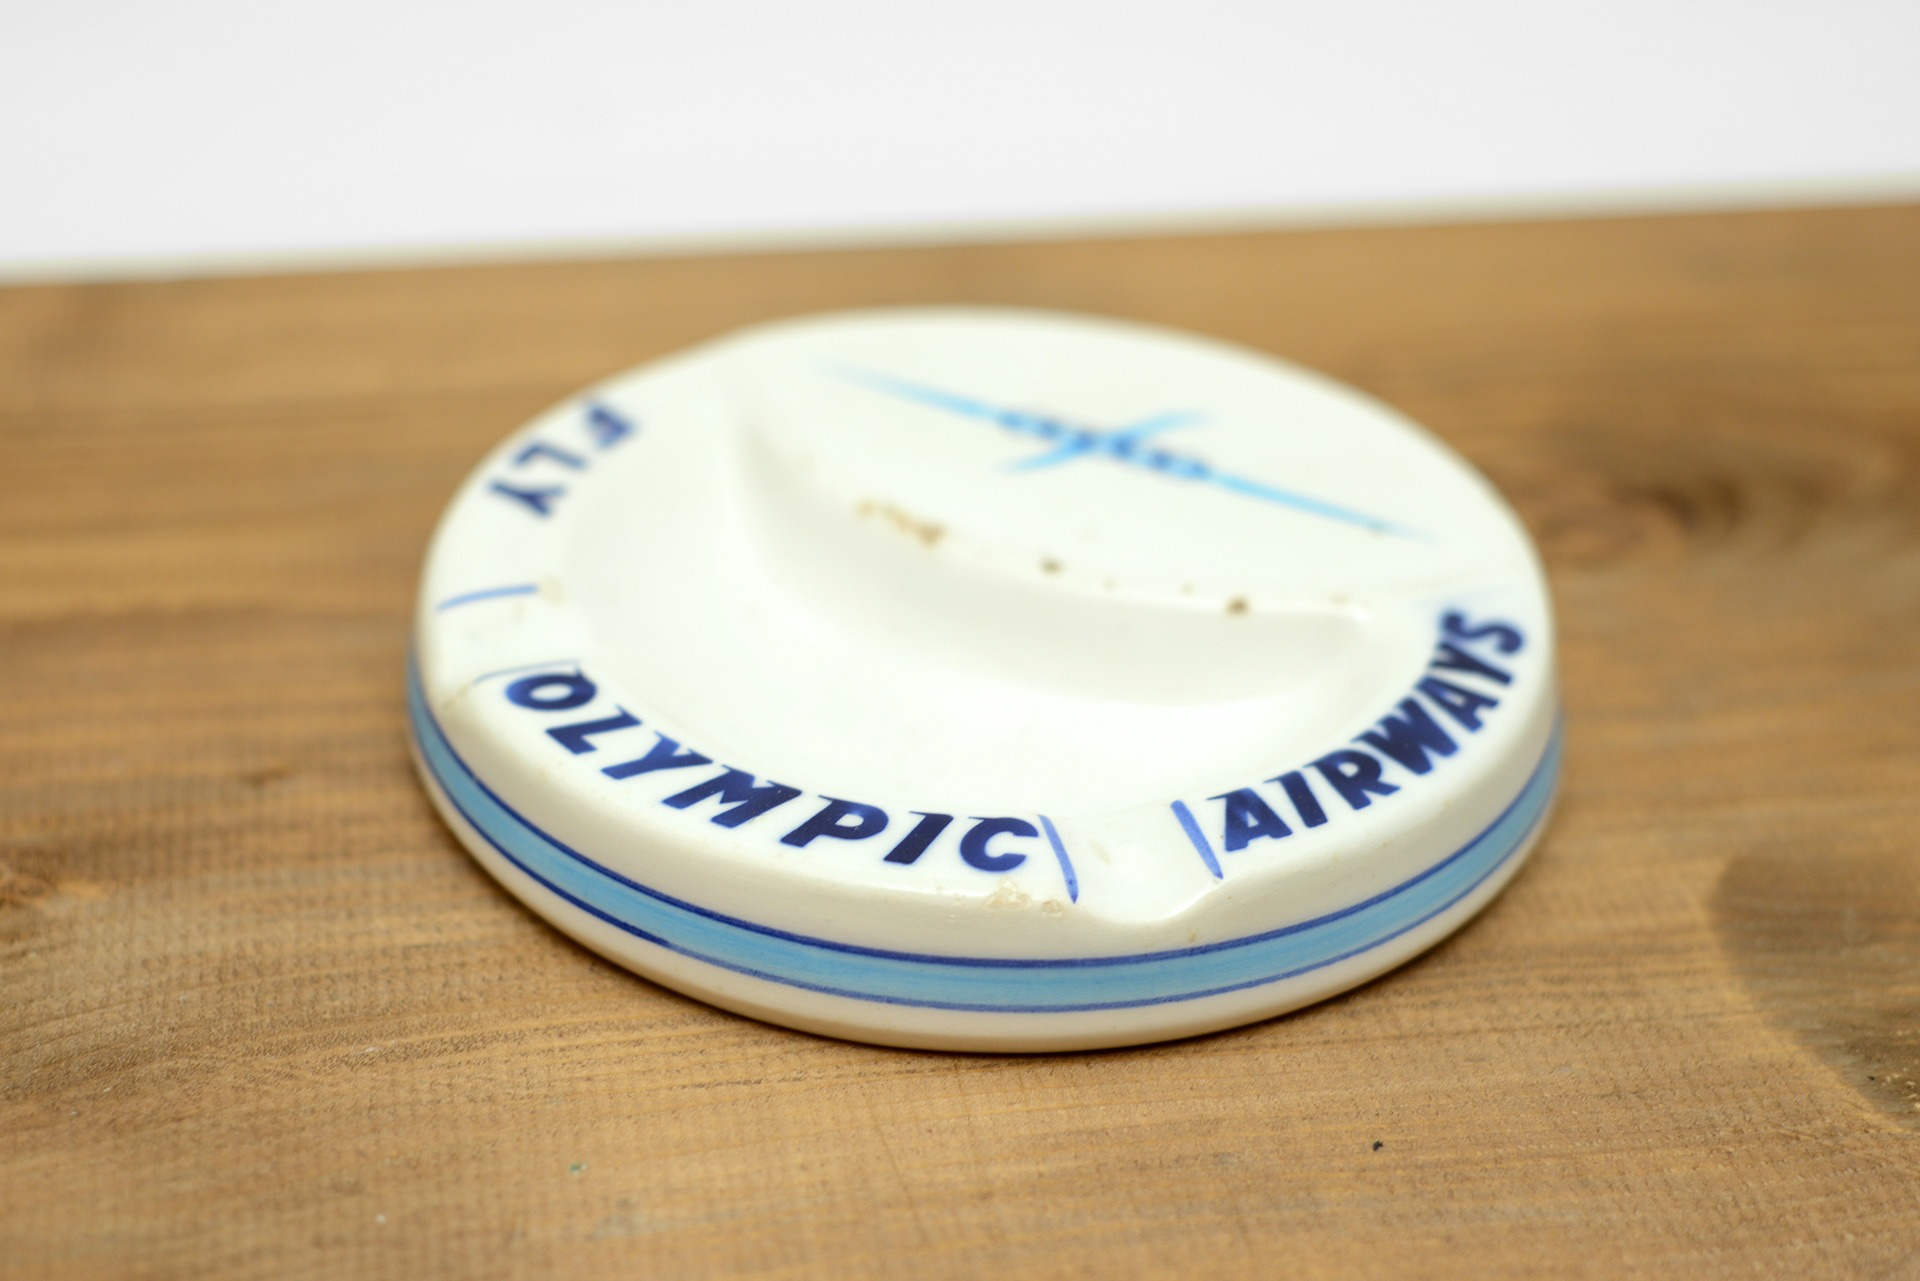 1960s Olympic Airways ceramic ashtray by Ceramica Titano, San Marino